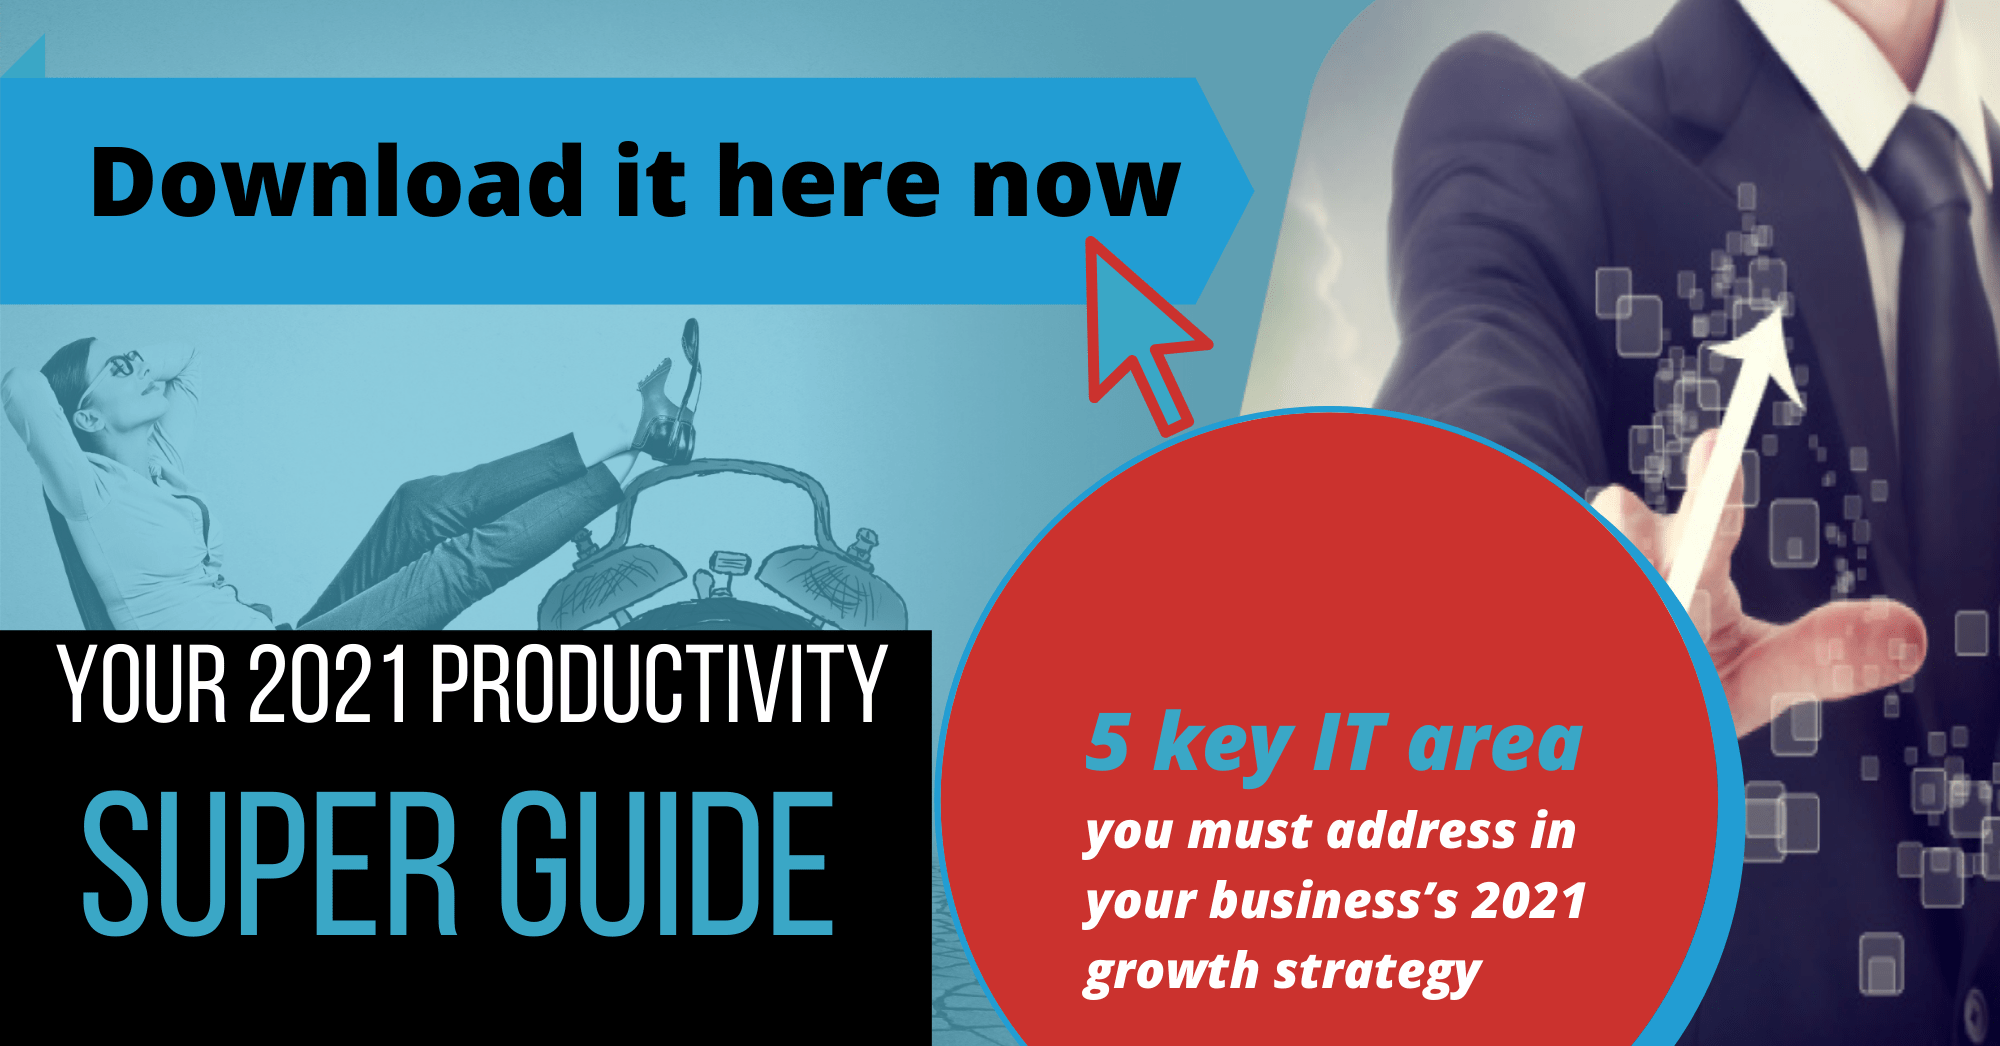 Productivity Guide, IT Support, East Anglia, 5 Key Areas